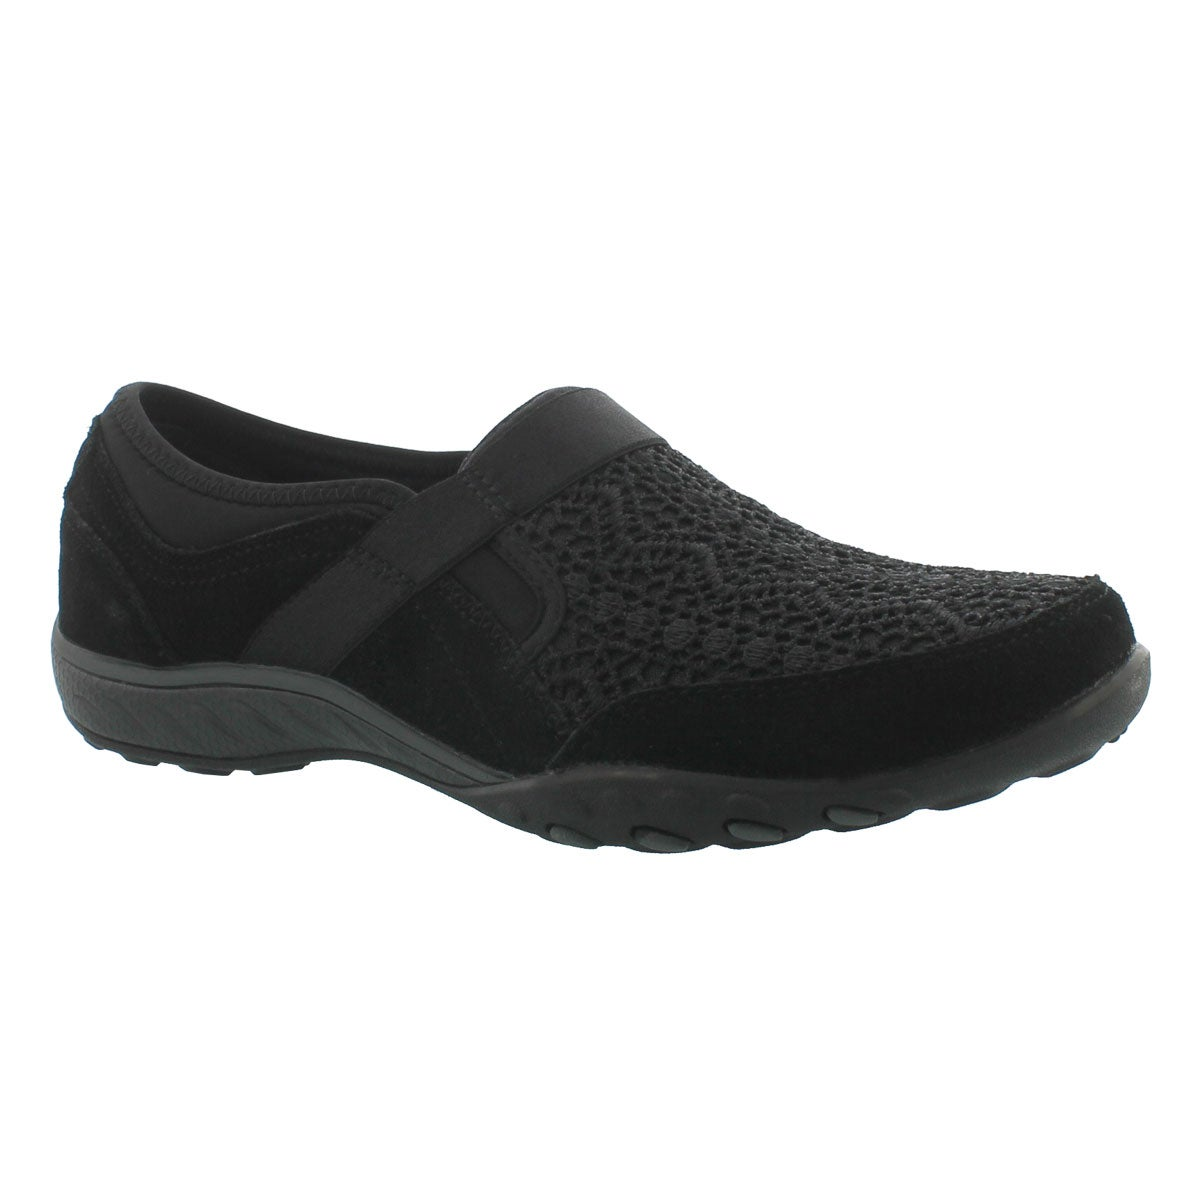 Lds Breathe-Easy Our Song blk slip on